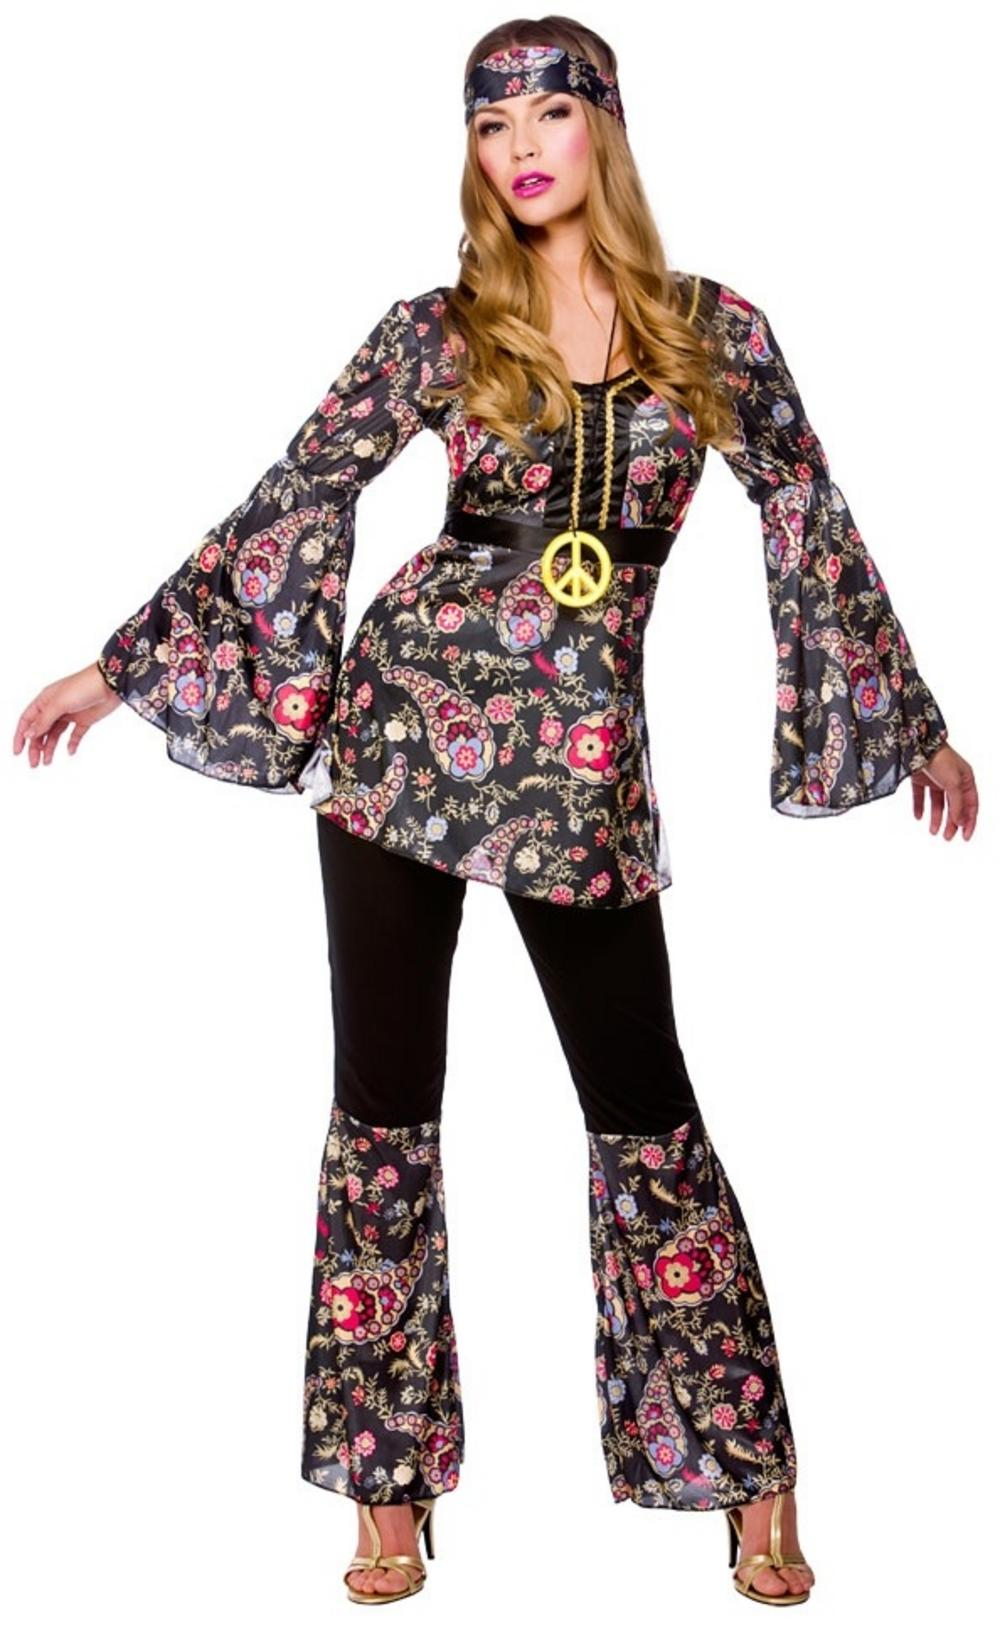 Flower power hippie fashion 69